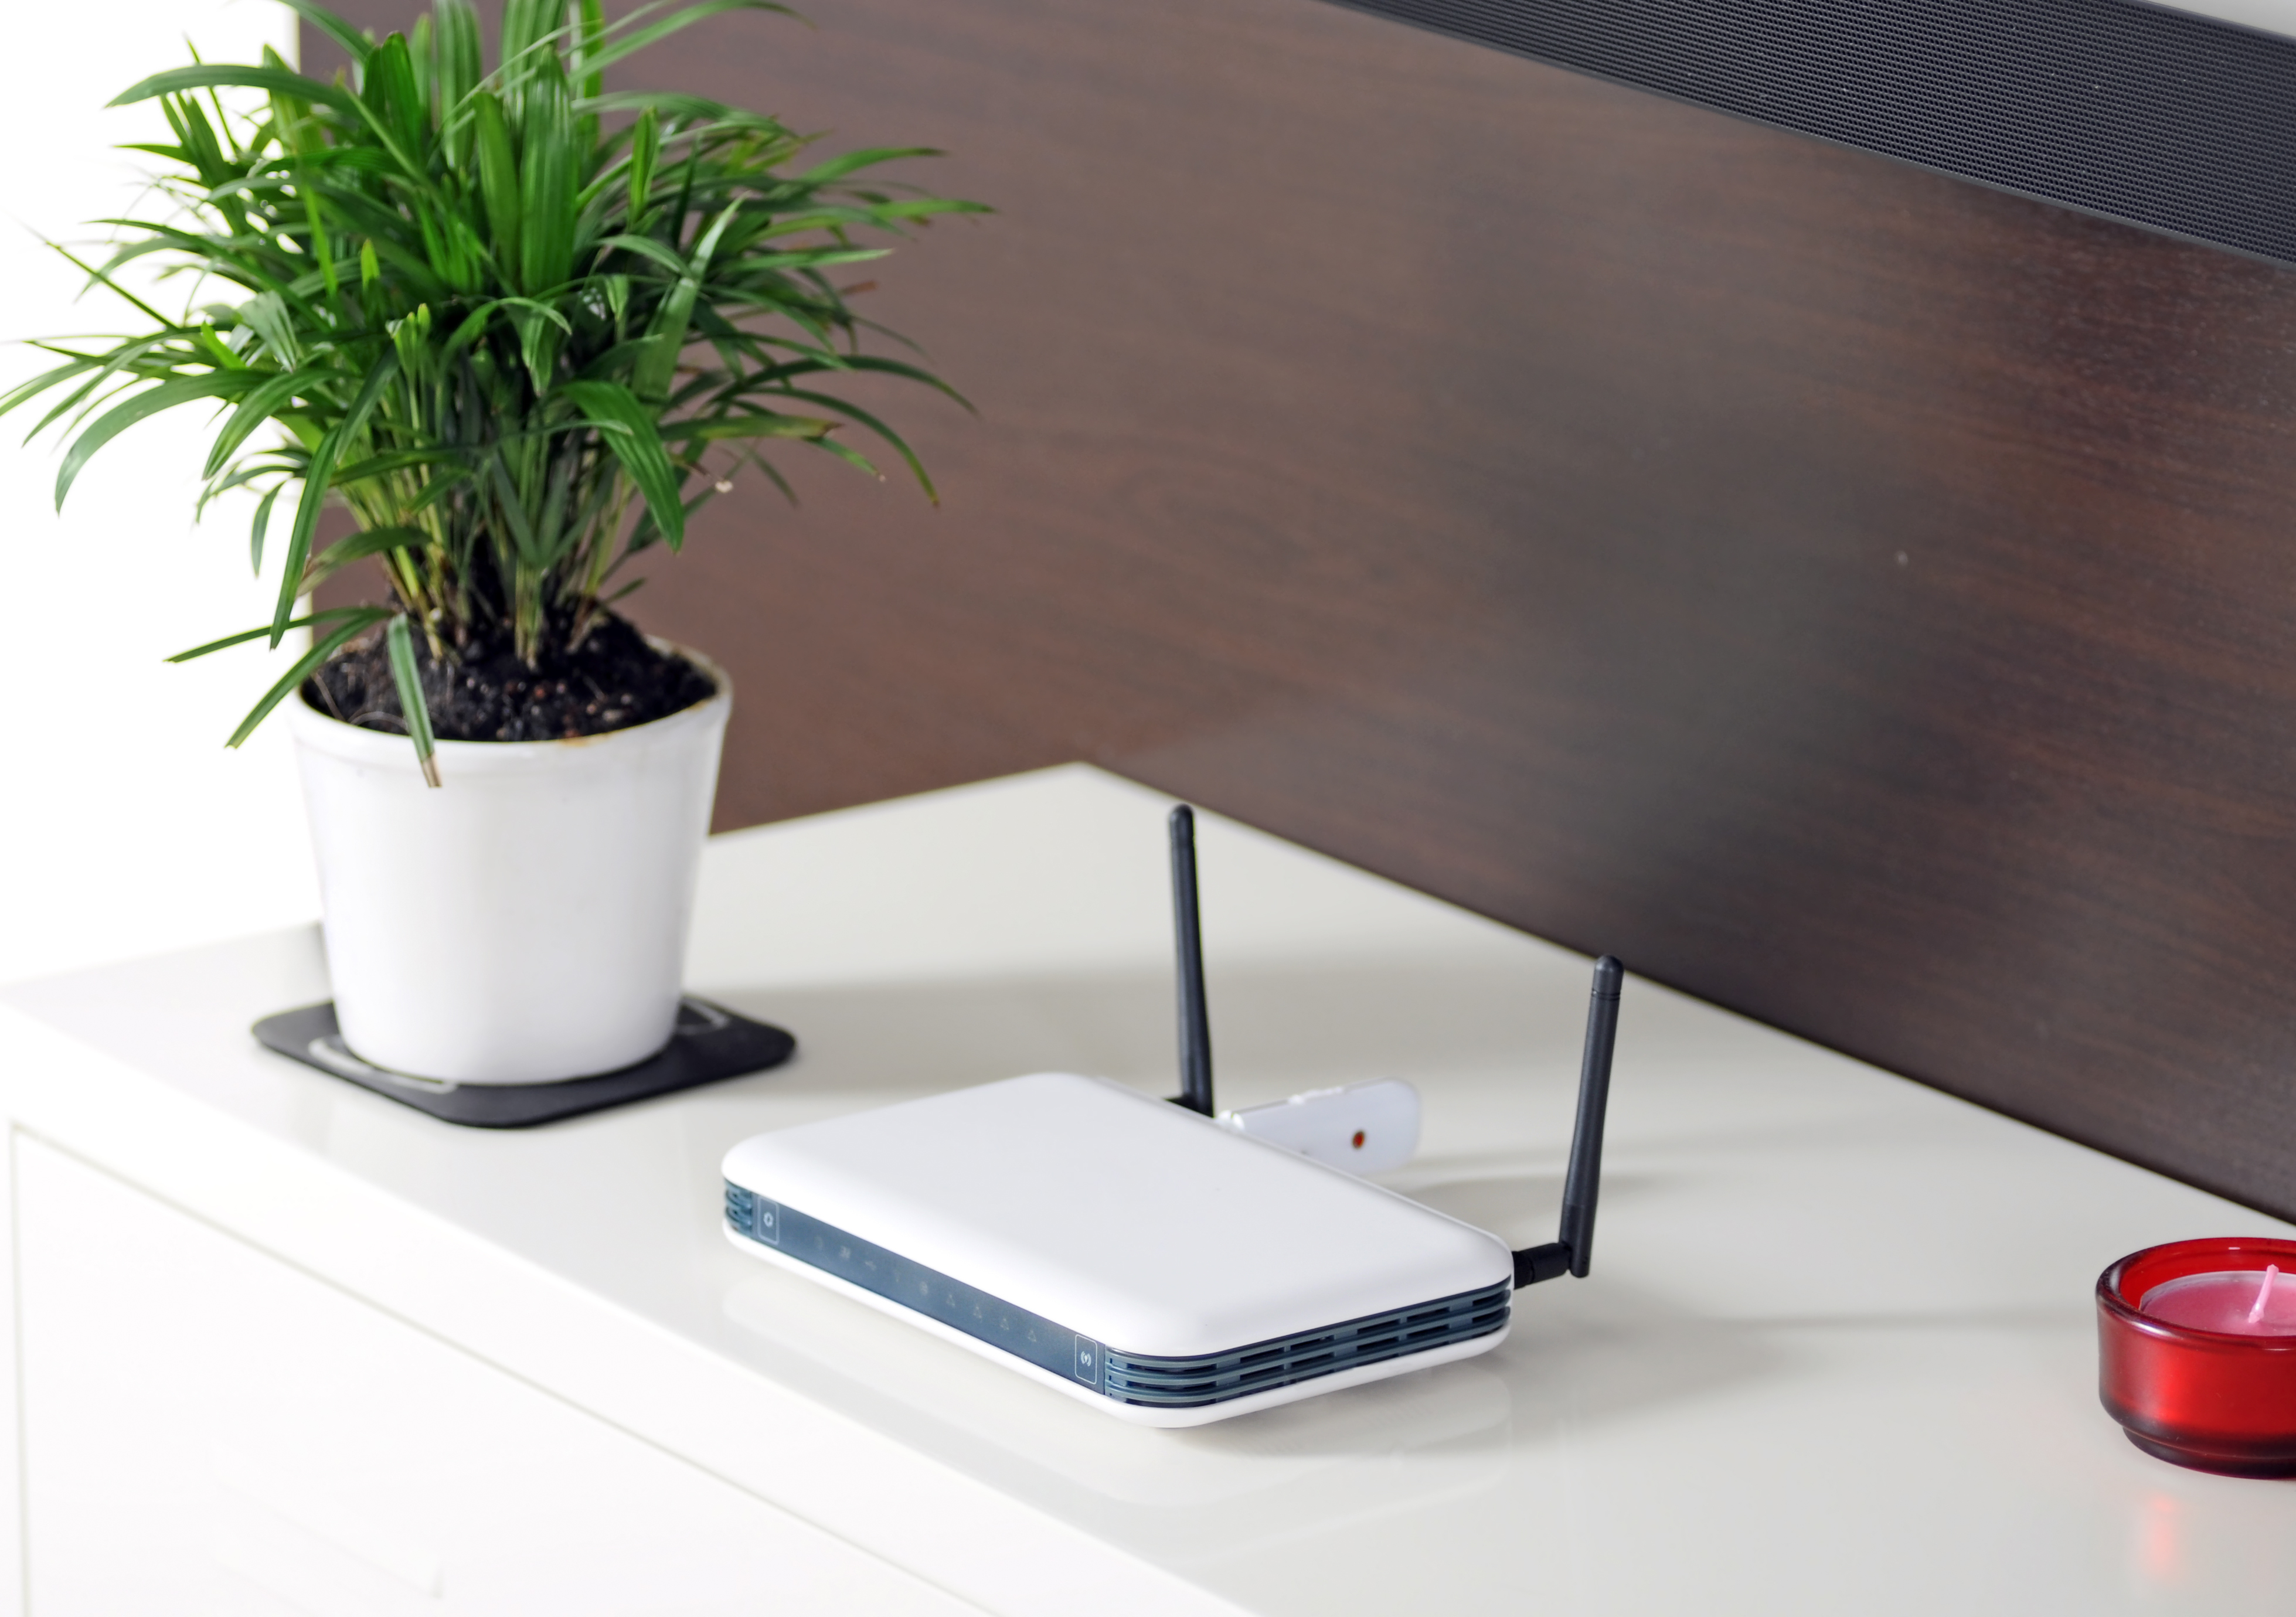 10 simple tips for making your home wifi network faster